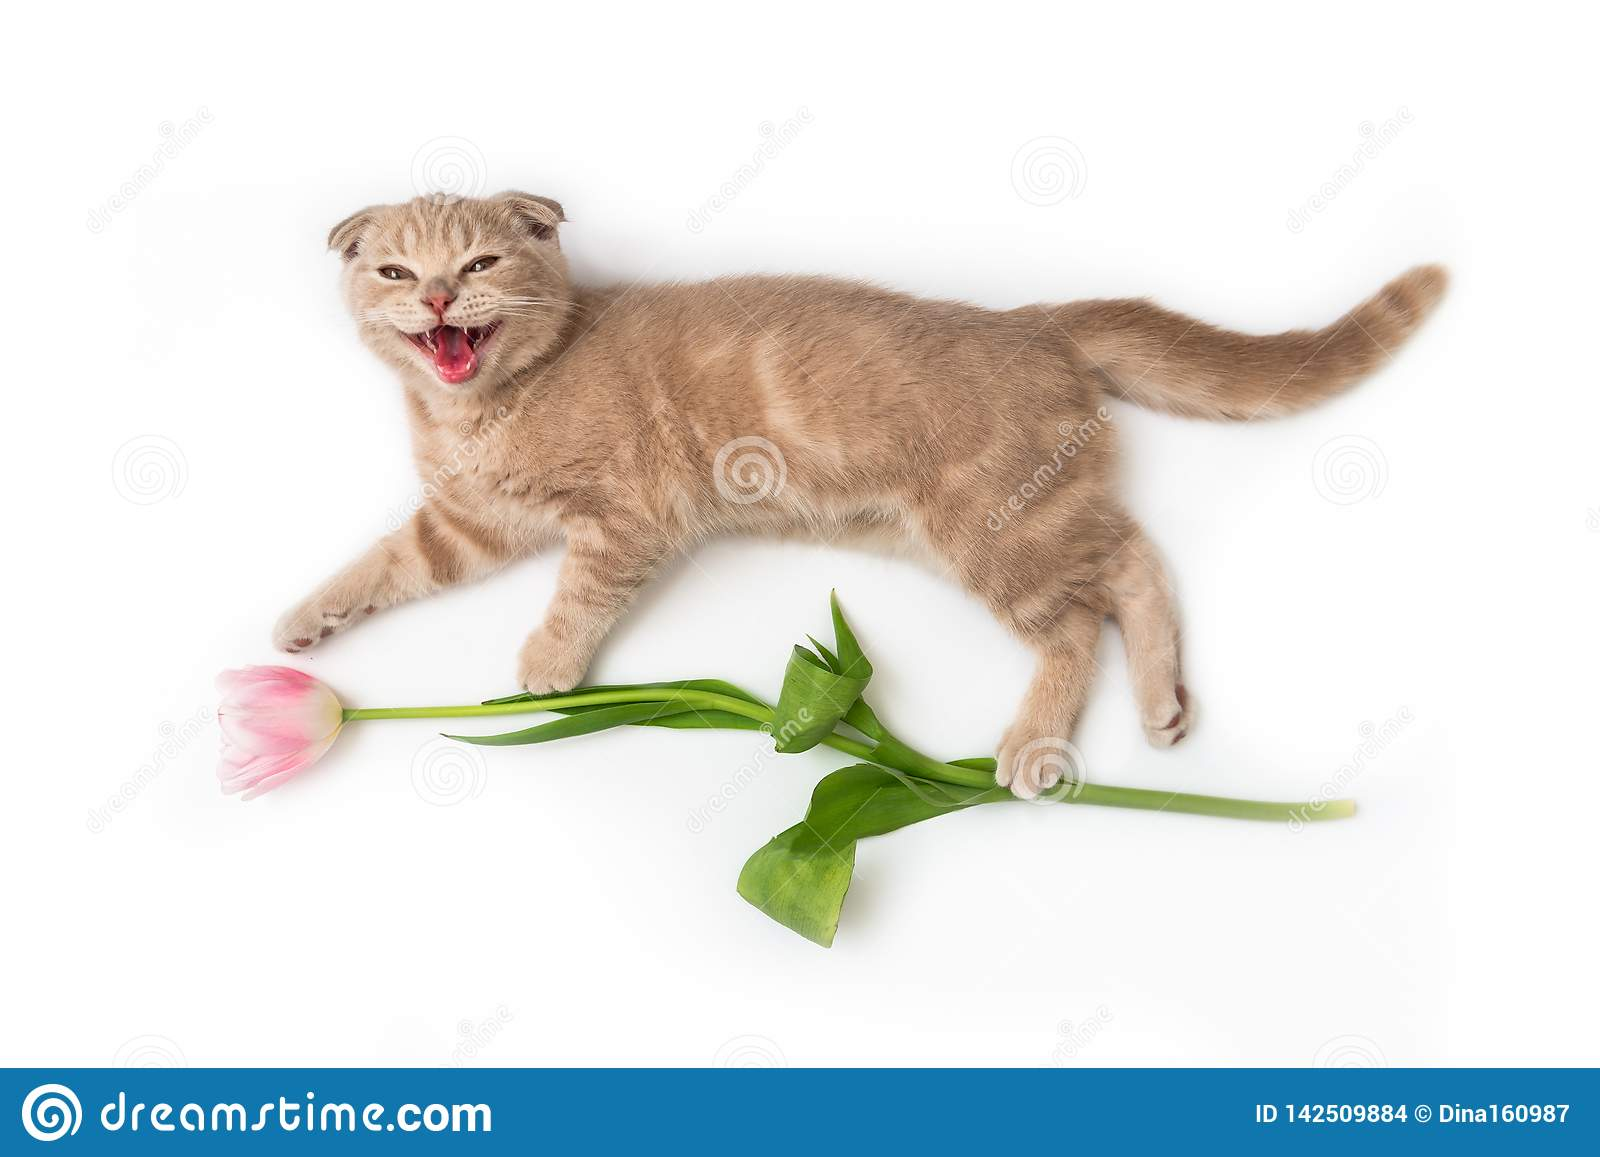 Happy smiling cat with a tulip in his paws. Holiday card creative concept, spring banner, flowers shop advertising. Happy birthday